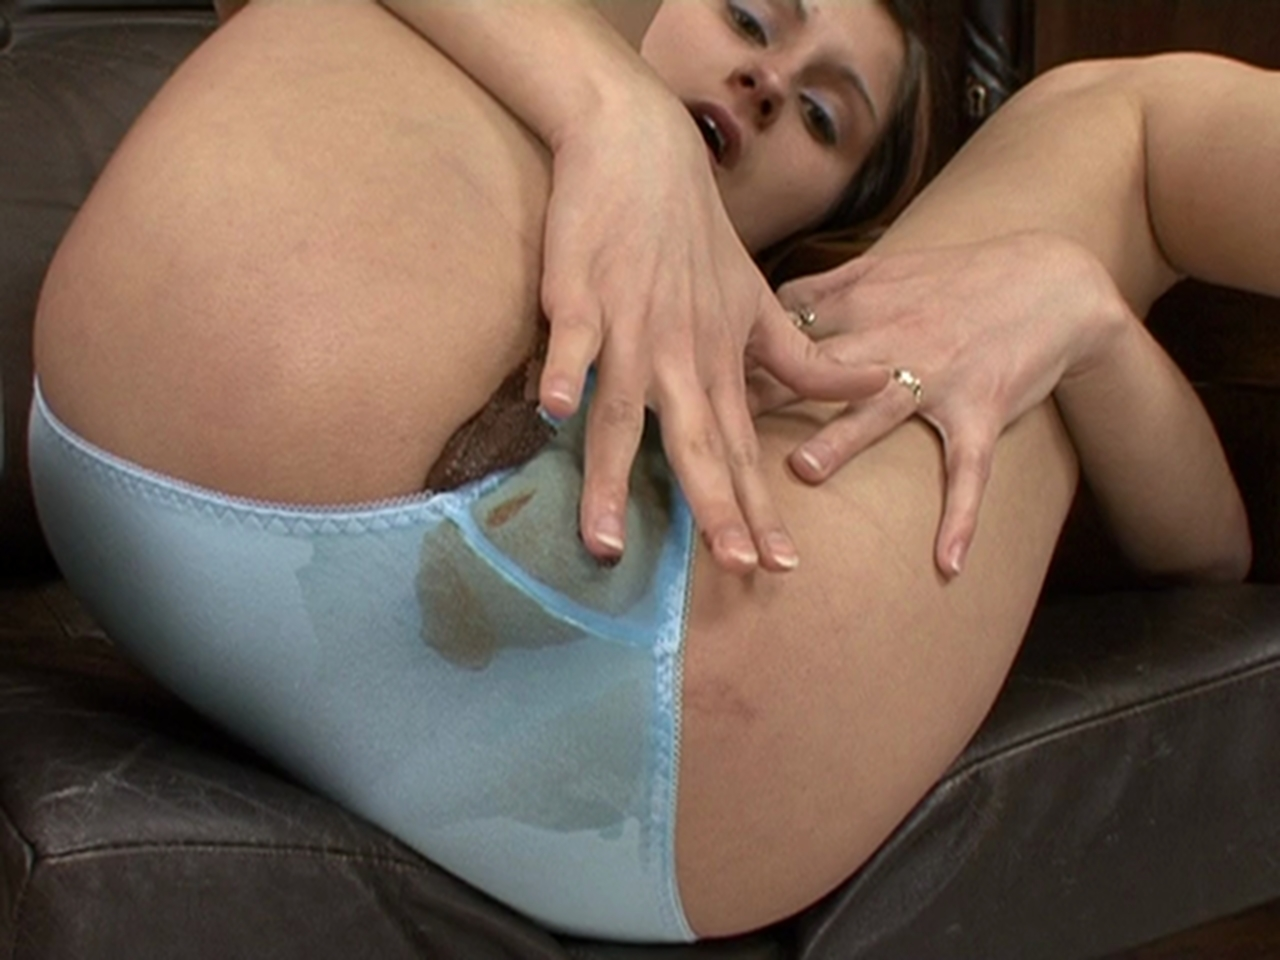 free-online-videos-of-panties-porn-naked-office-girl-porn